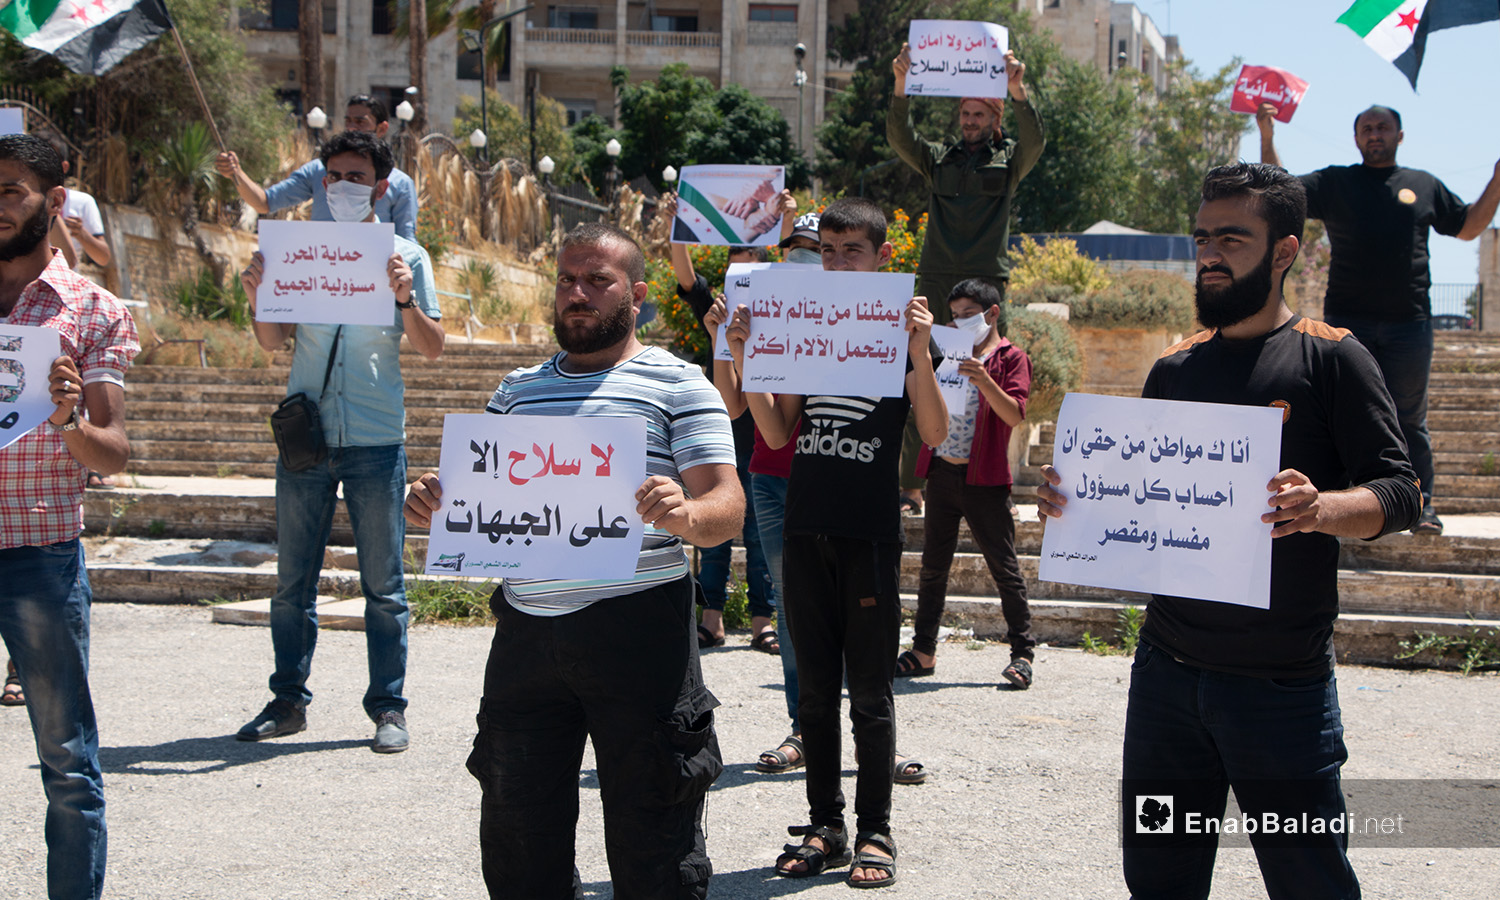 A group of young men carrying signs during a protest stand in Idlib city – 17 July 2020 (Enab Baladi / Anas al-Khouli)